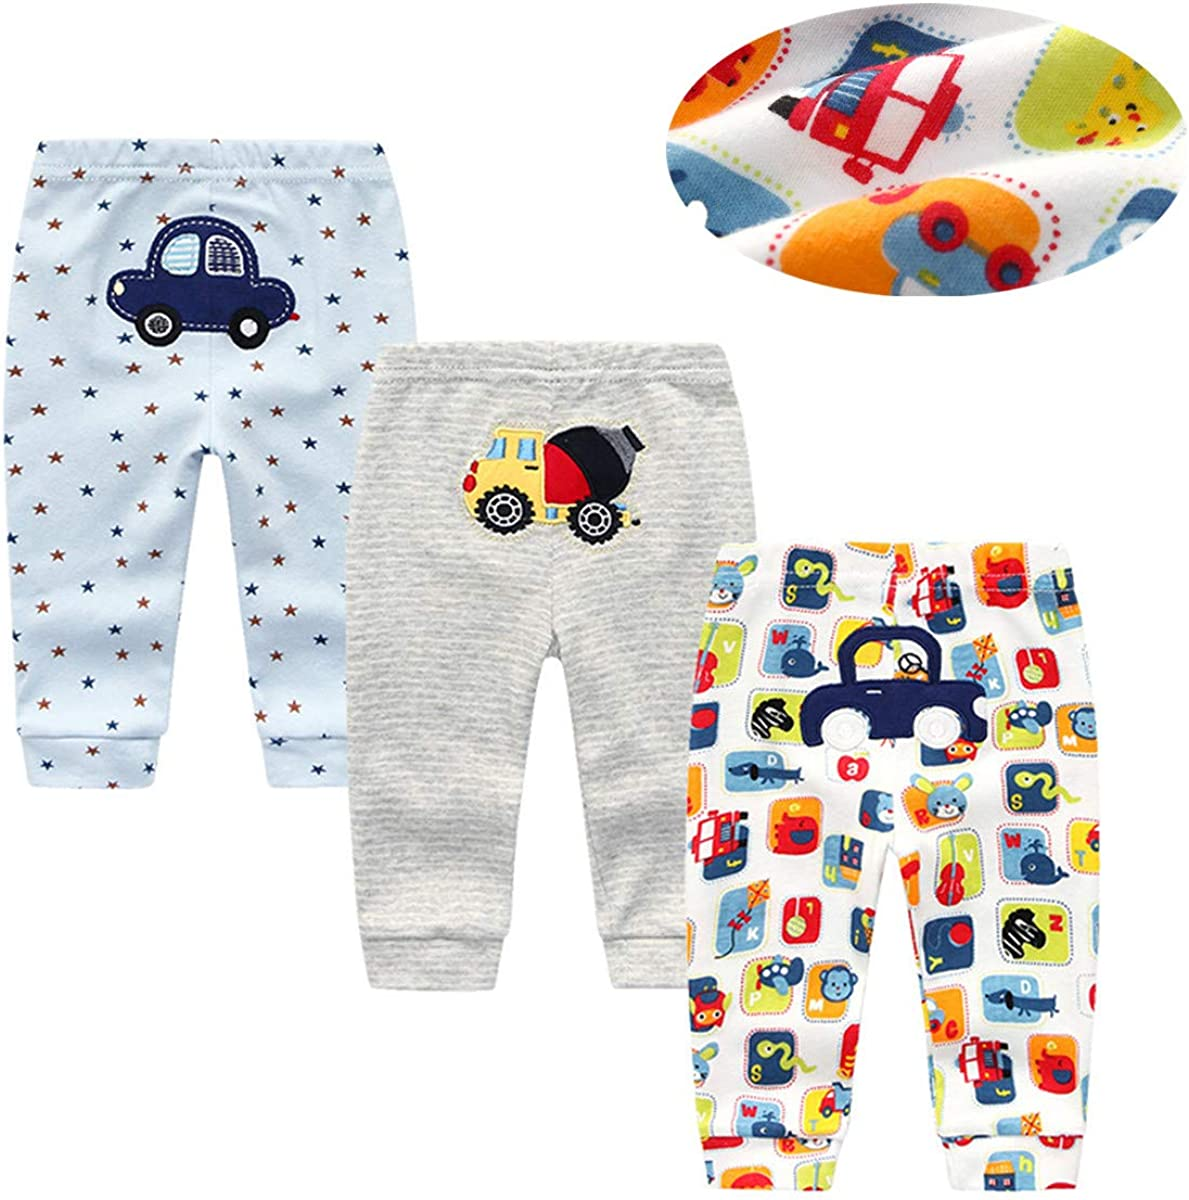 Kiddiezoom 4-Pack Newborn Pants Baby and Toddler Unisex Cotton trousers Pants